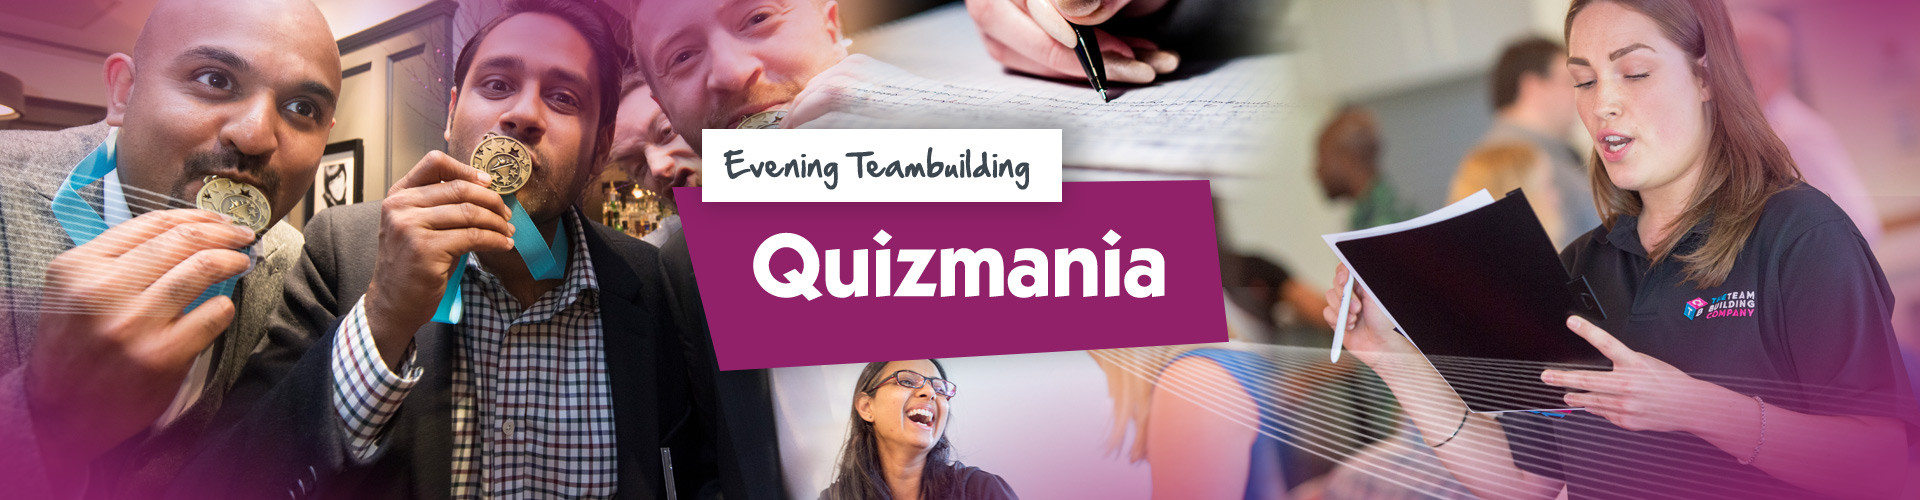 Teambuilding | Quiz Evenings